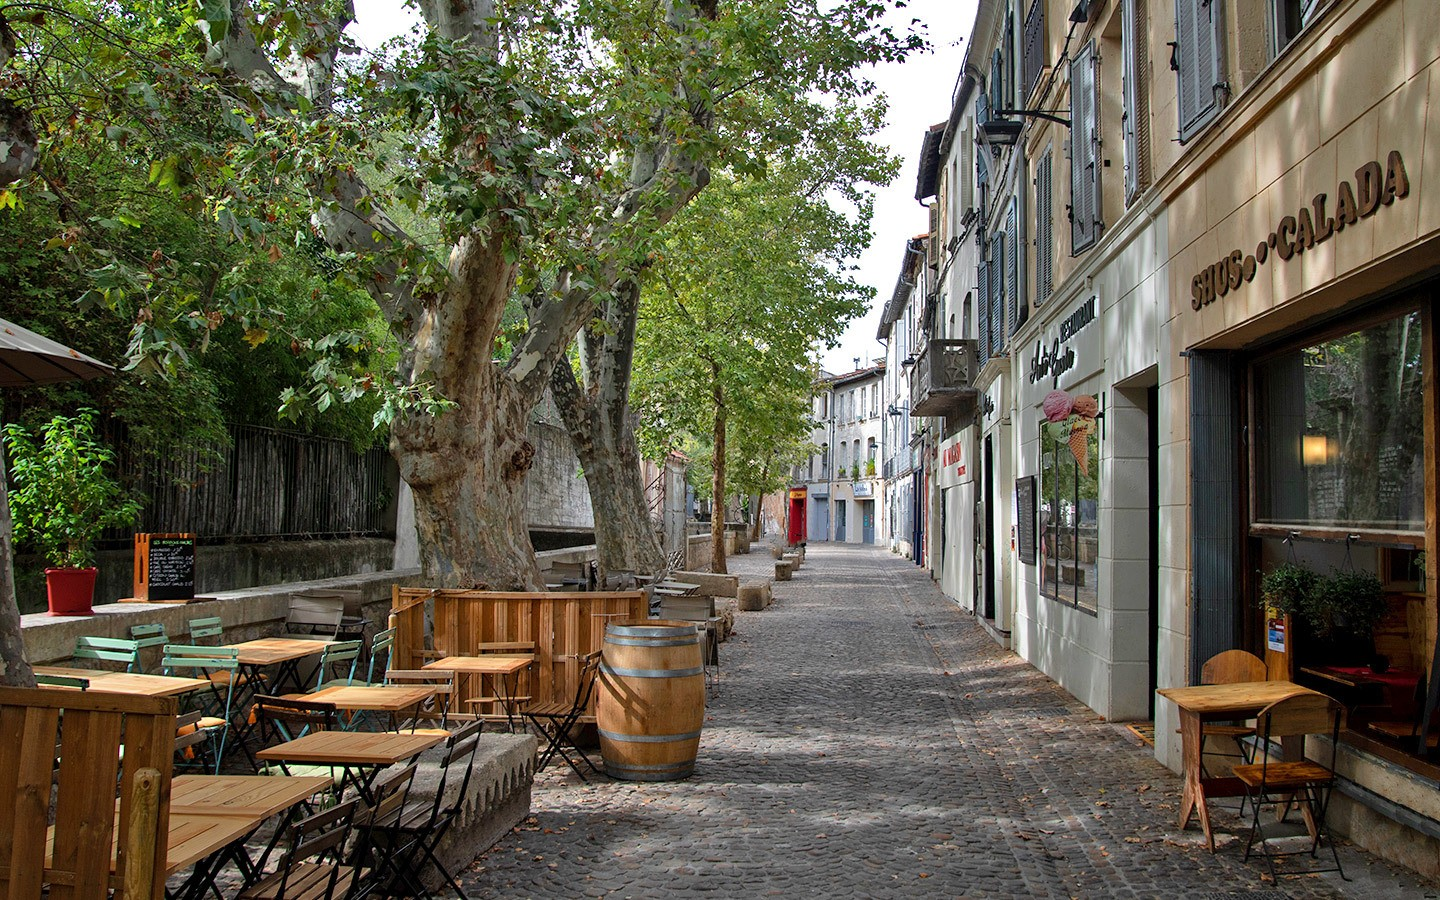 Pretty Rue des Teinturiers – one of the things to do in Avignon